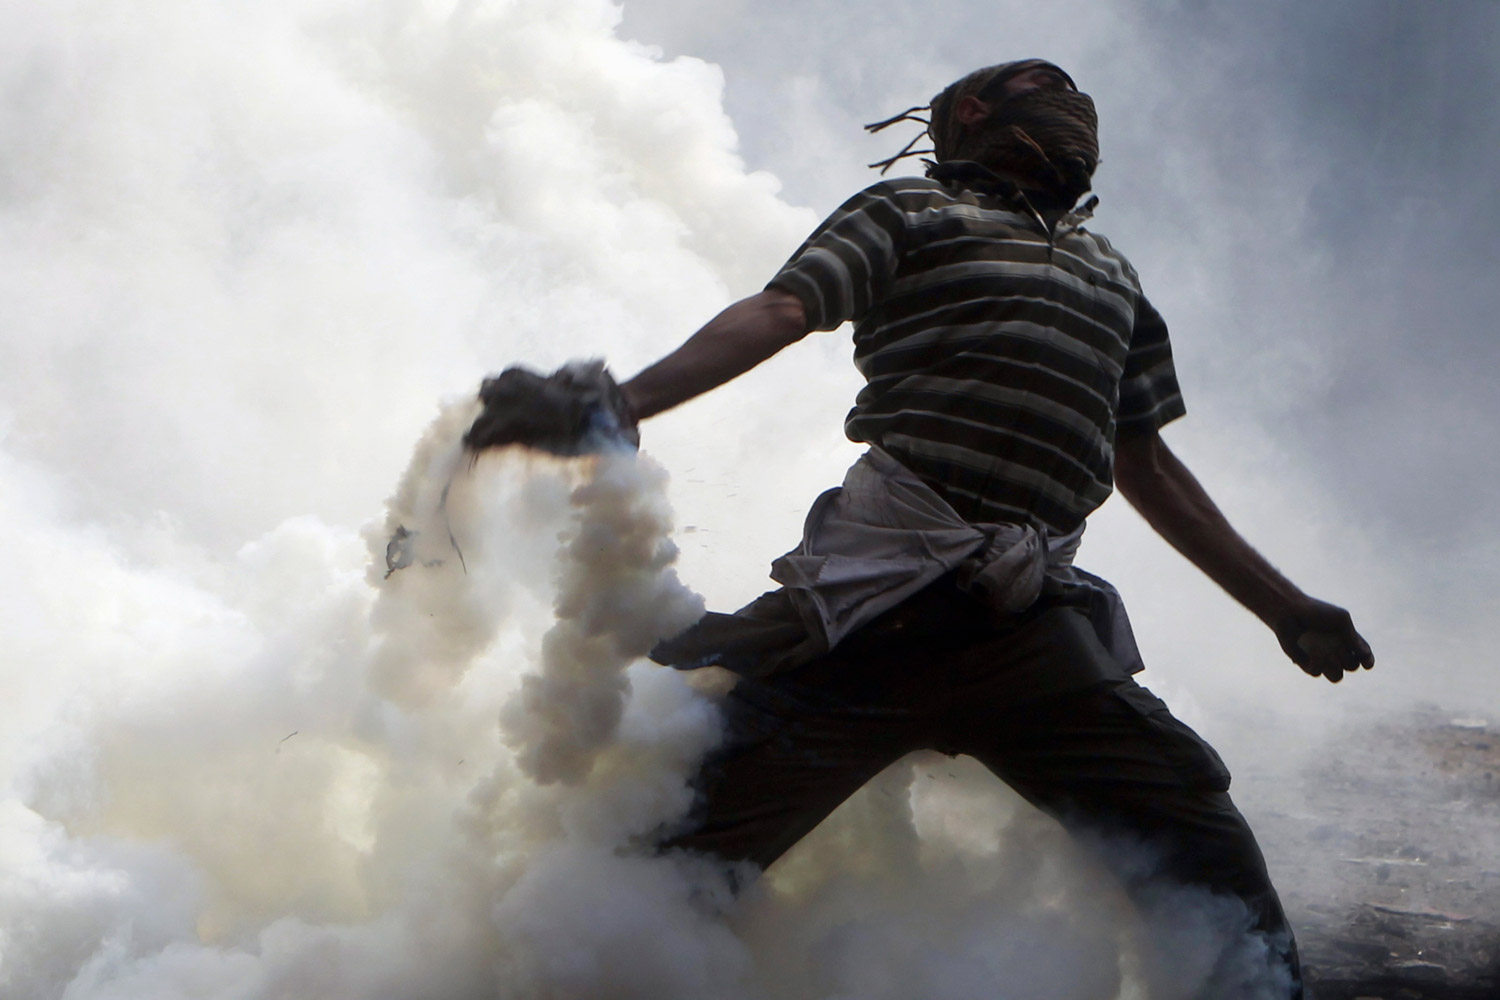 November 22, 2011. A protester tosses a tear gas canister, which was earlier thrown by riot police during clashes along a road which leads to the Interior Ministry, near Tahrir Square in Cairo. Egyptians frustrated with military rule battled police in the streets again on Nov. 22 as generals scrambled to cope with the cabinet's proffered resignation after bloodshed that has jolted plans for Egypt's first free election in decades.